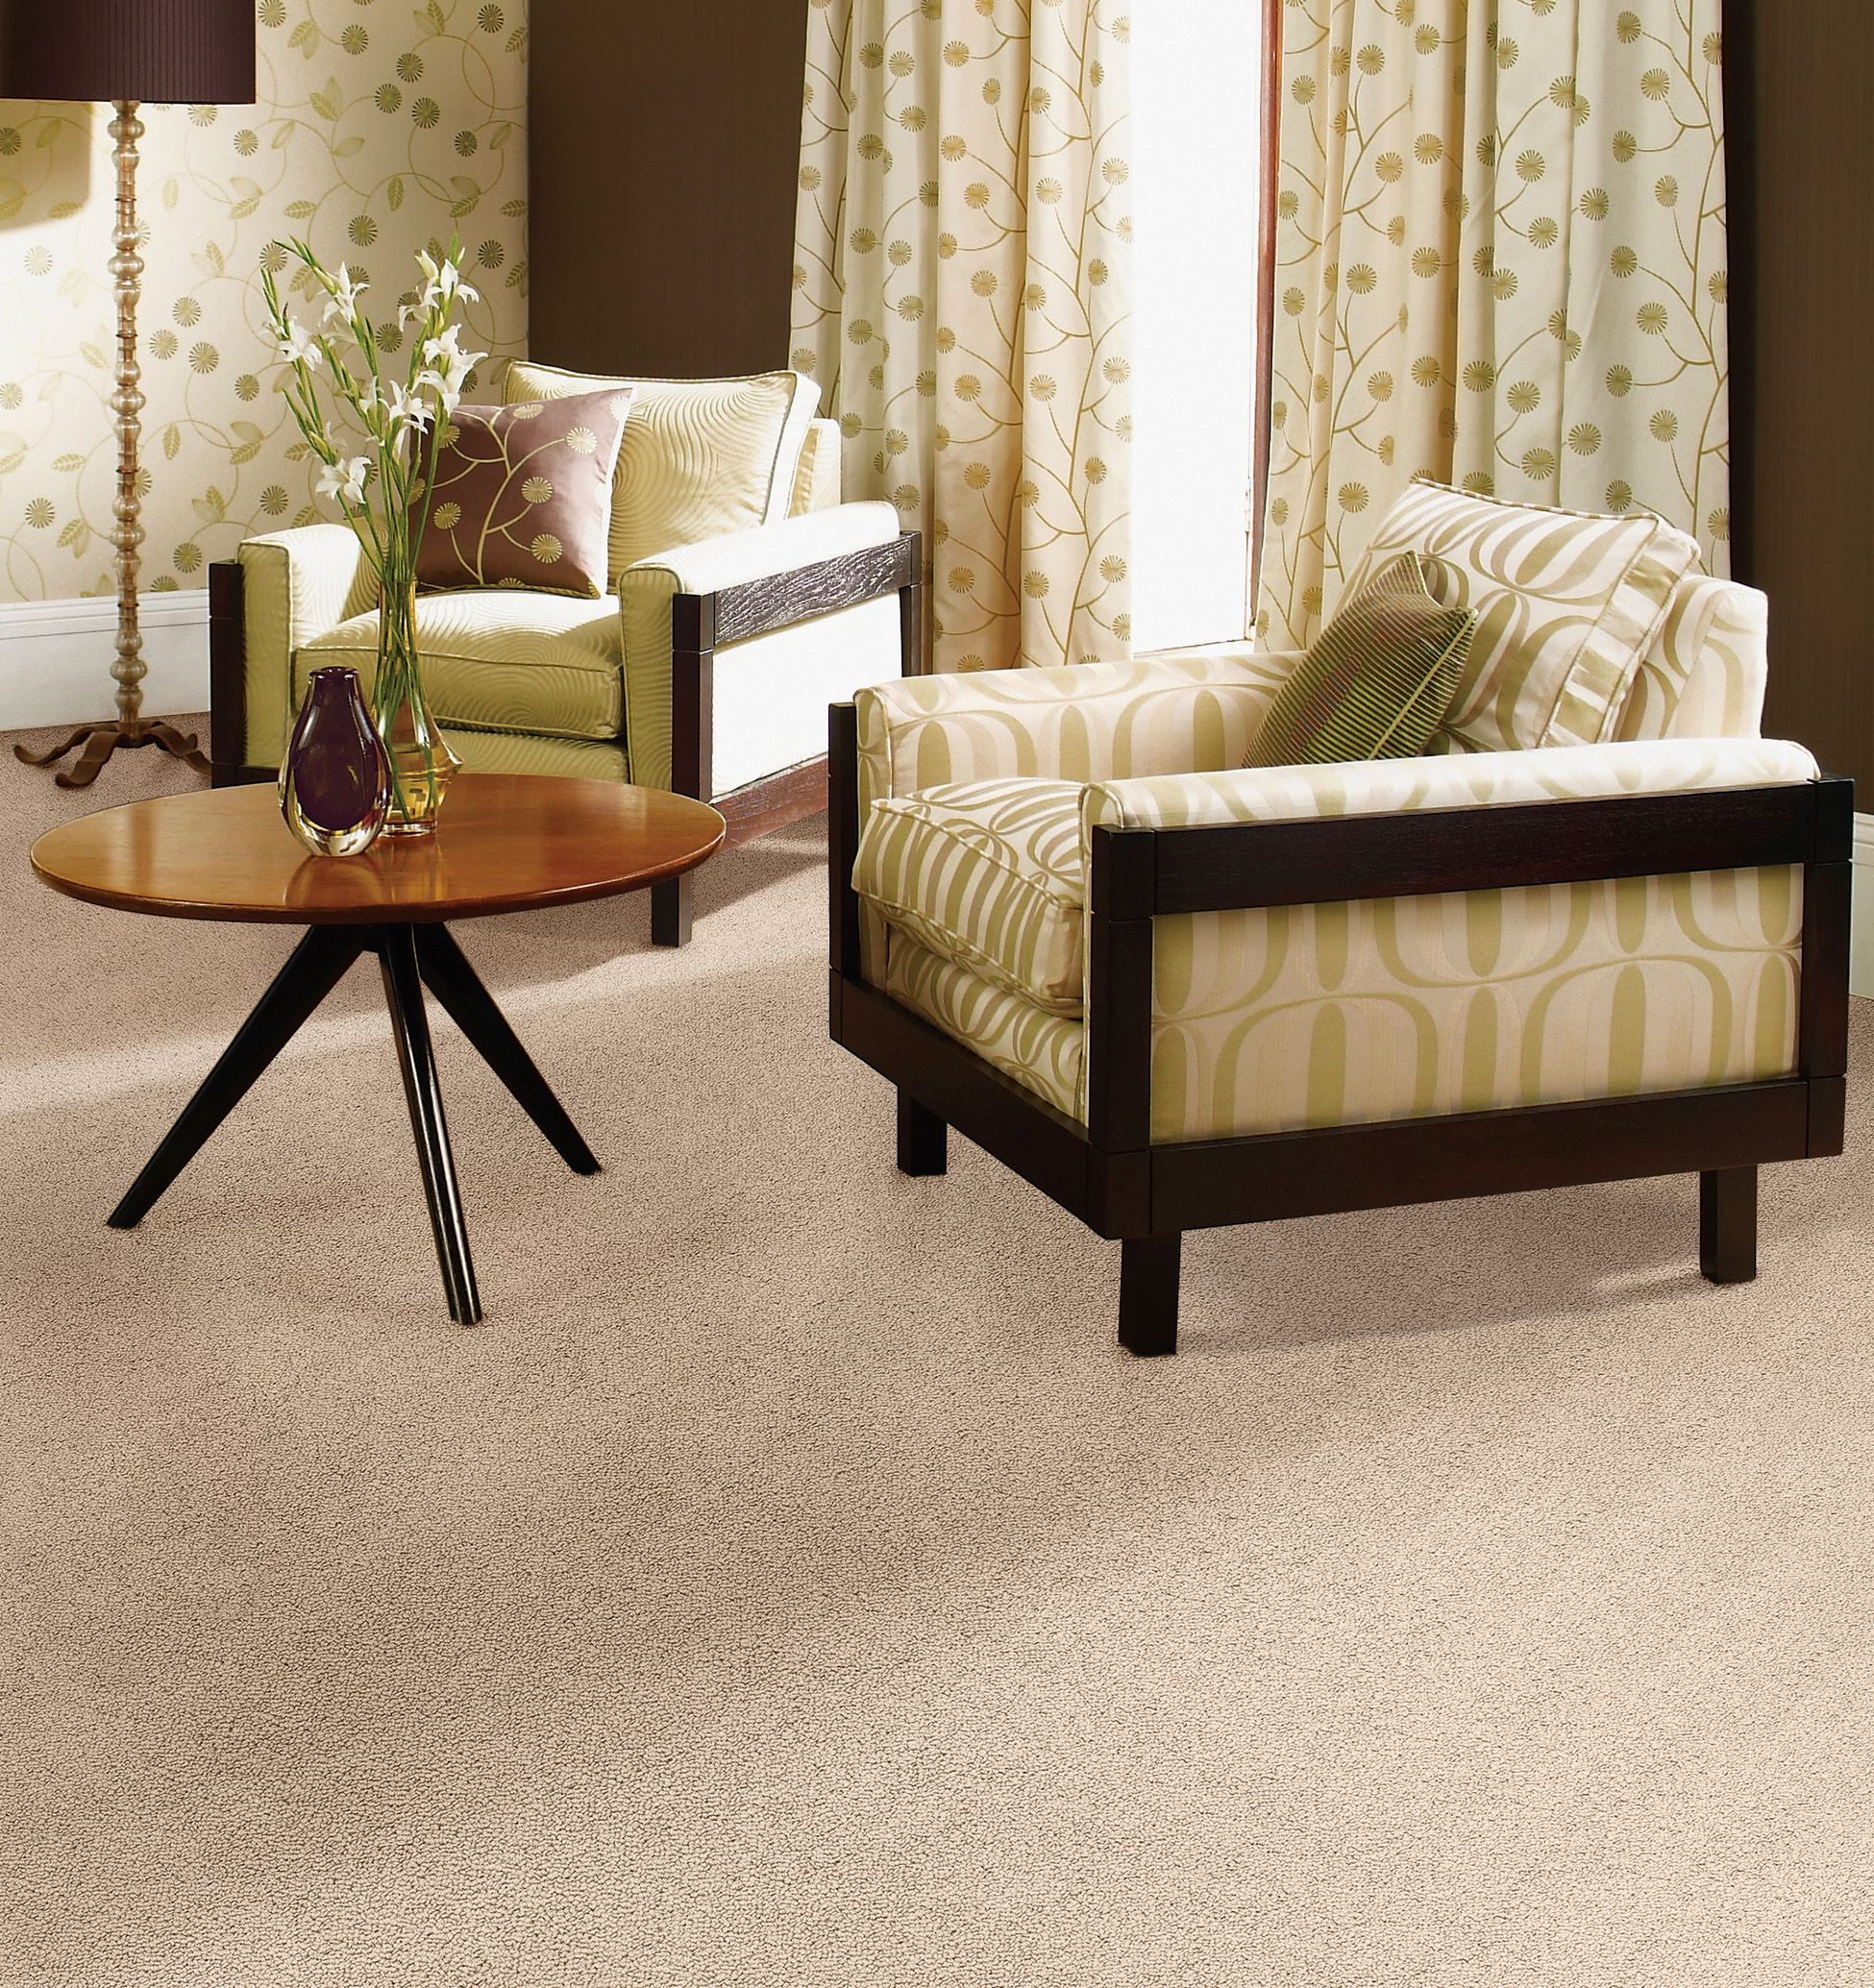 Accolade 100 Pure New Wool Home decor, Furniture, Flooring